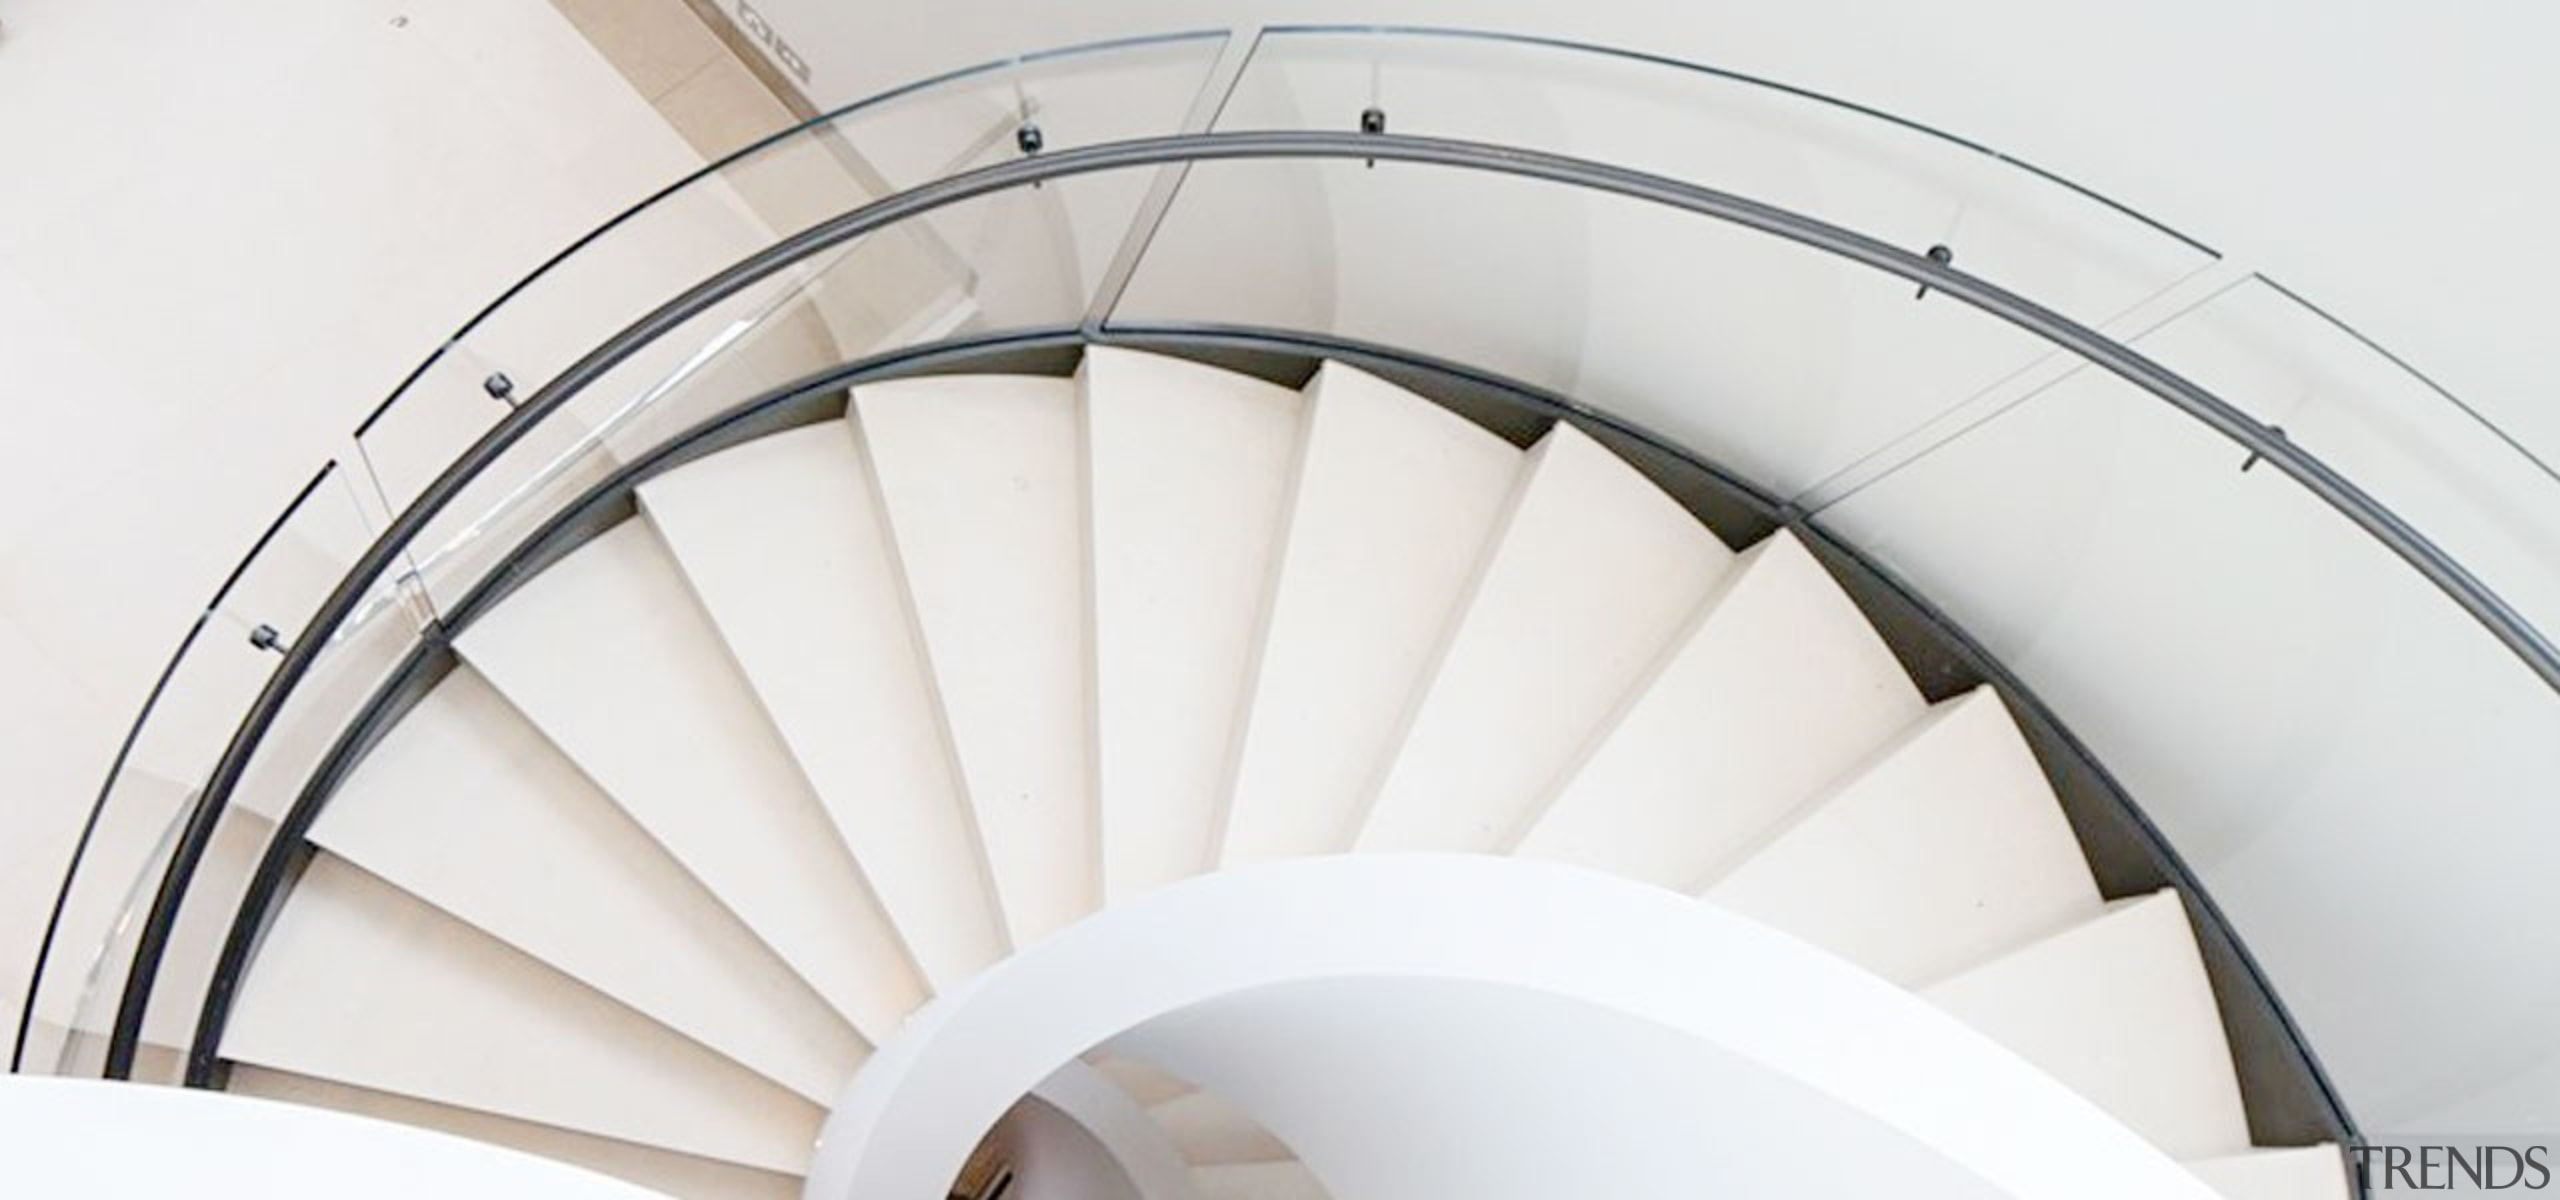 Killara 05 - arch | architecture | ceiling arch, architecture, ceiling, daylighting, material property, spiral, stairs, white, white